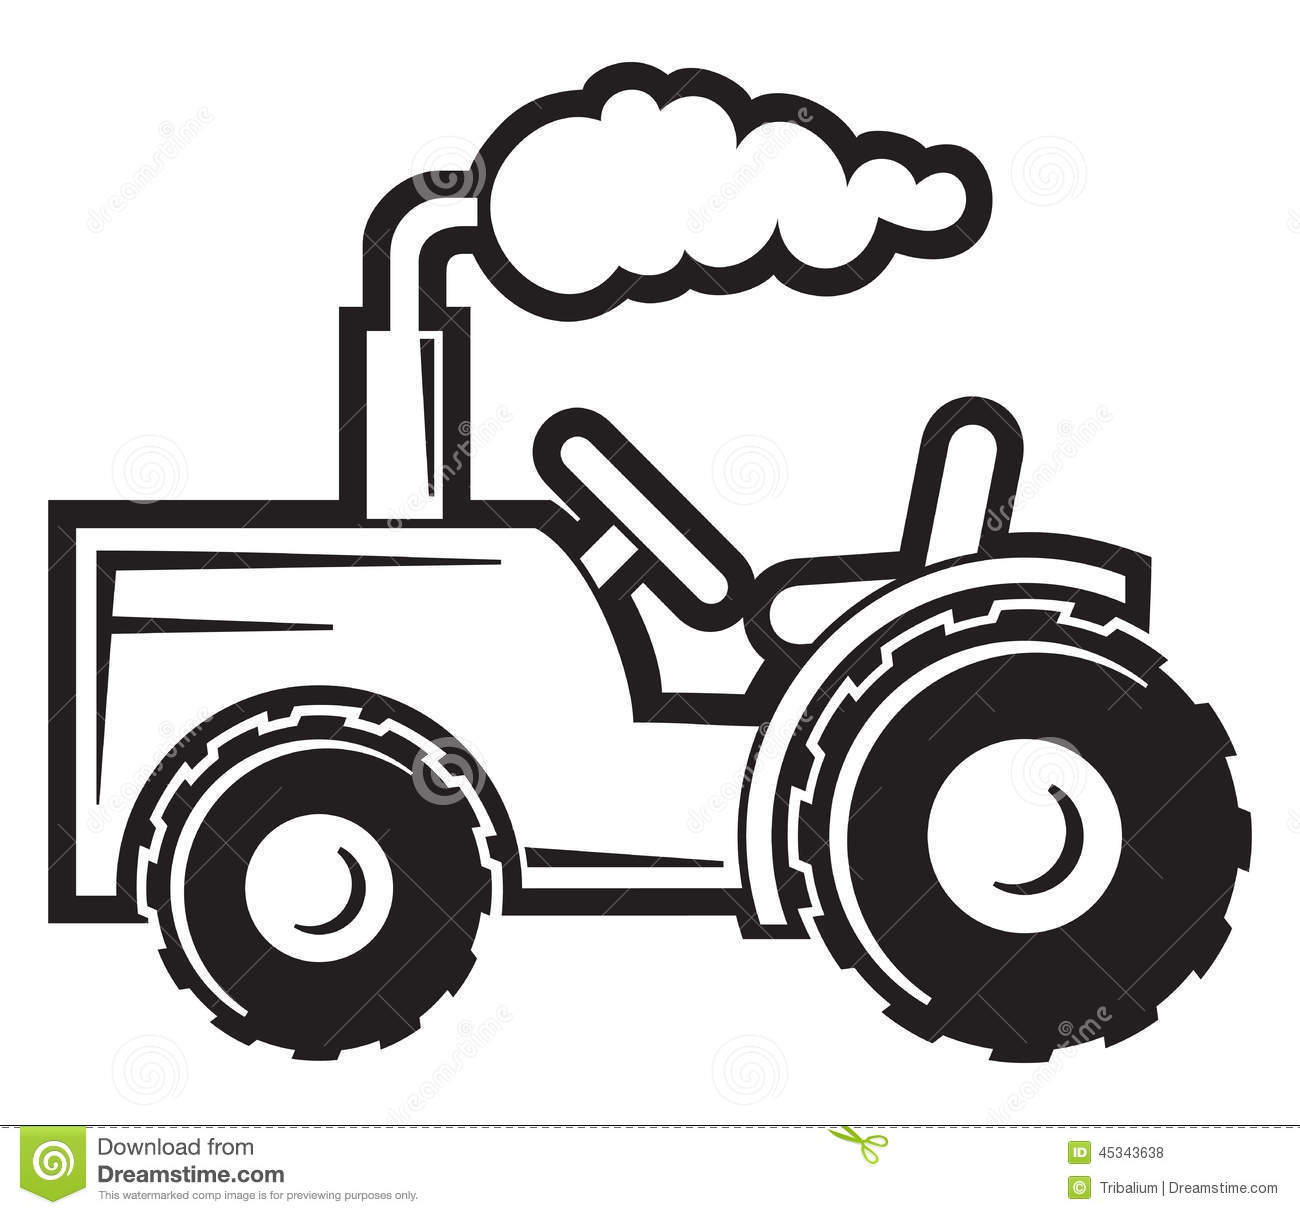 Tractor stock vector. Image of road, drive, field, farmer